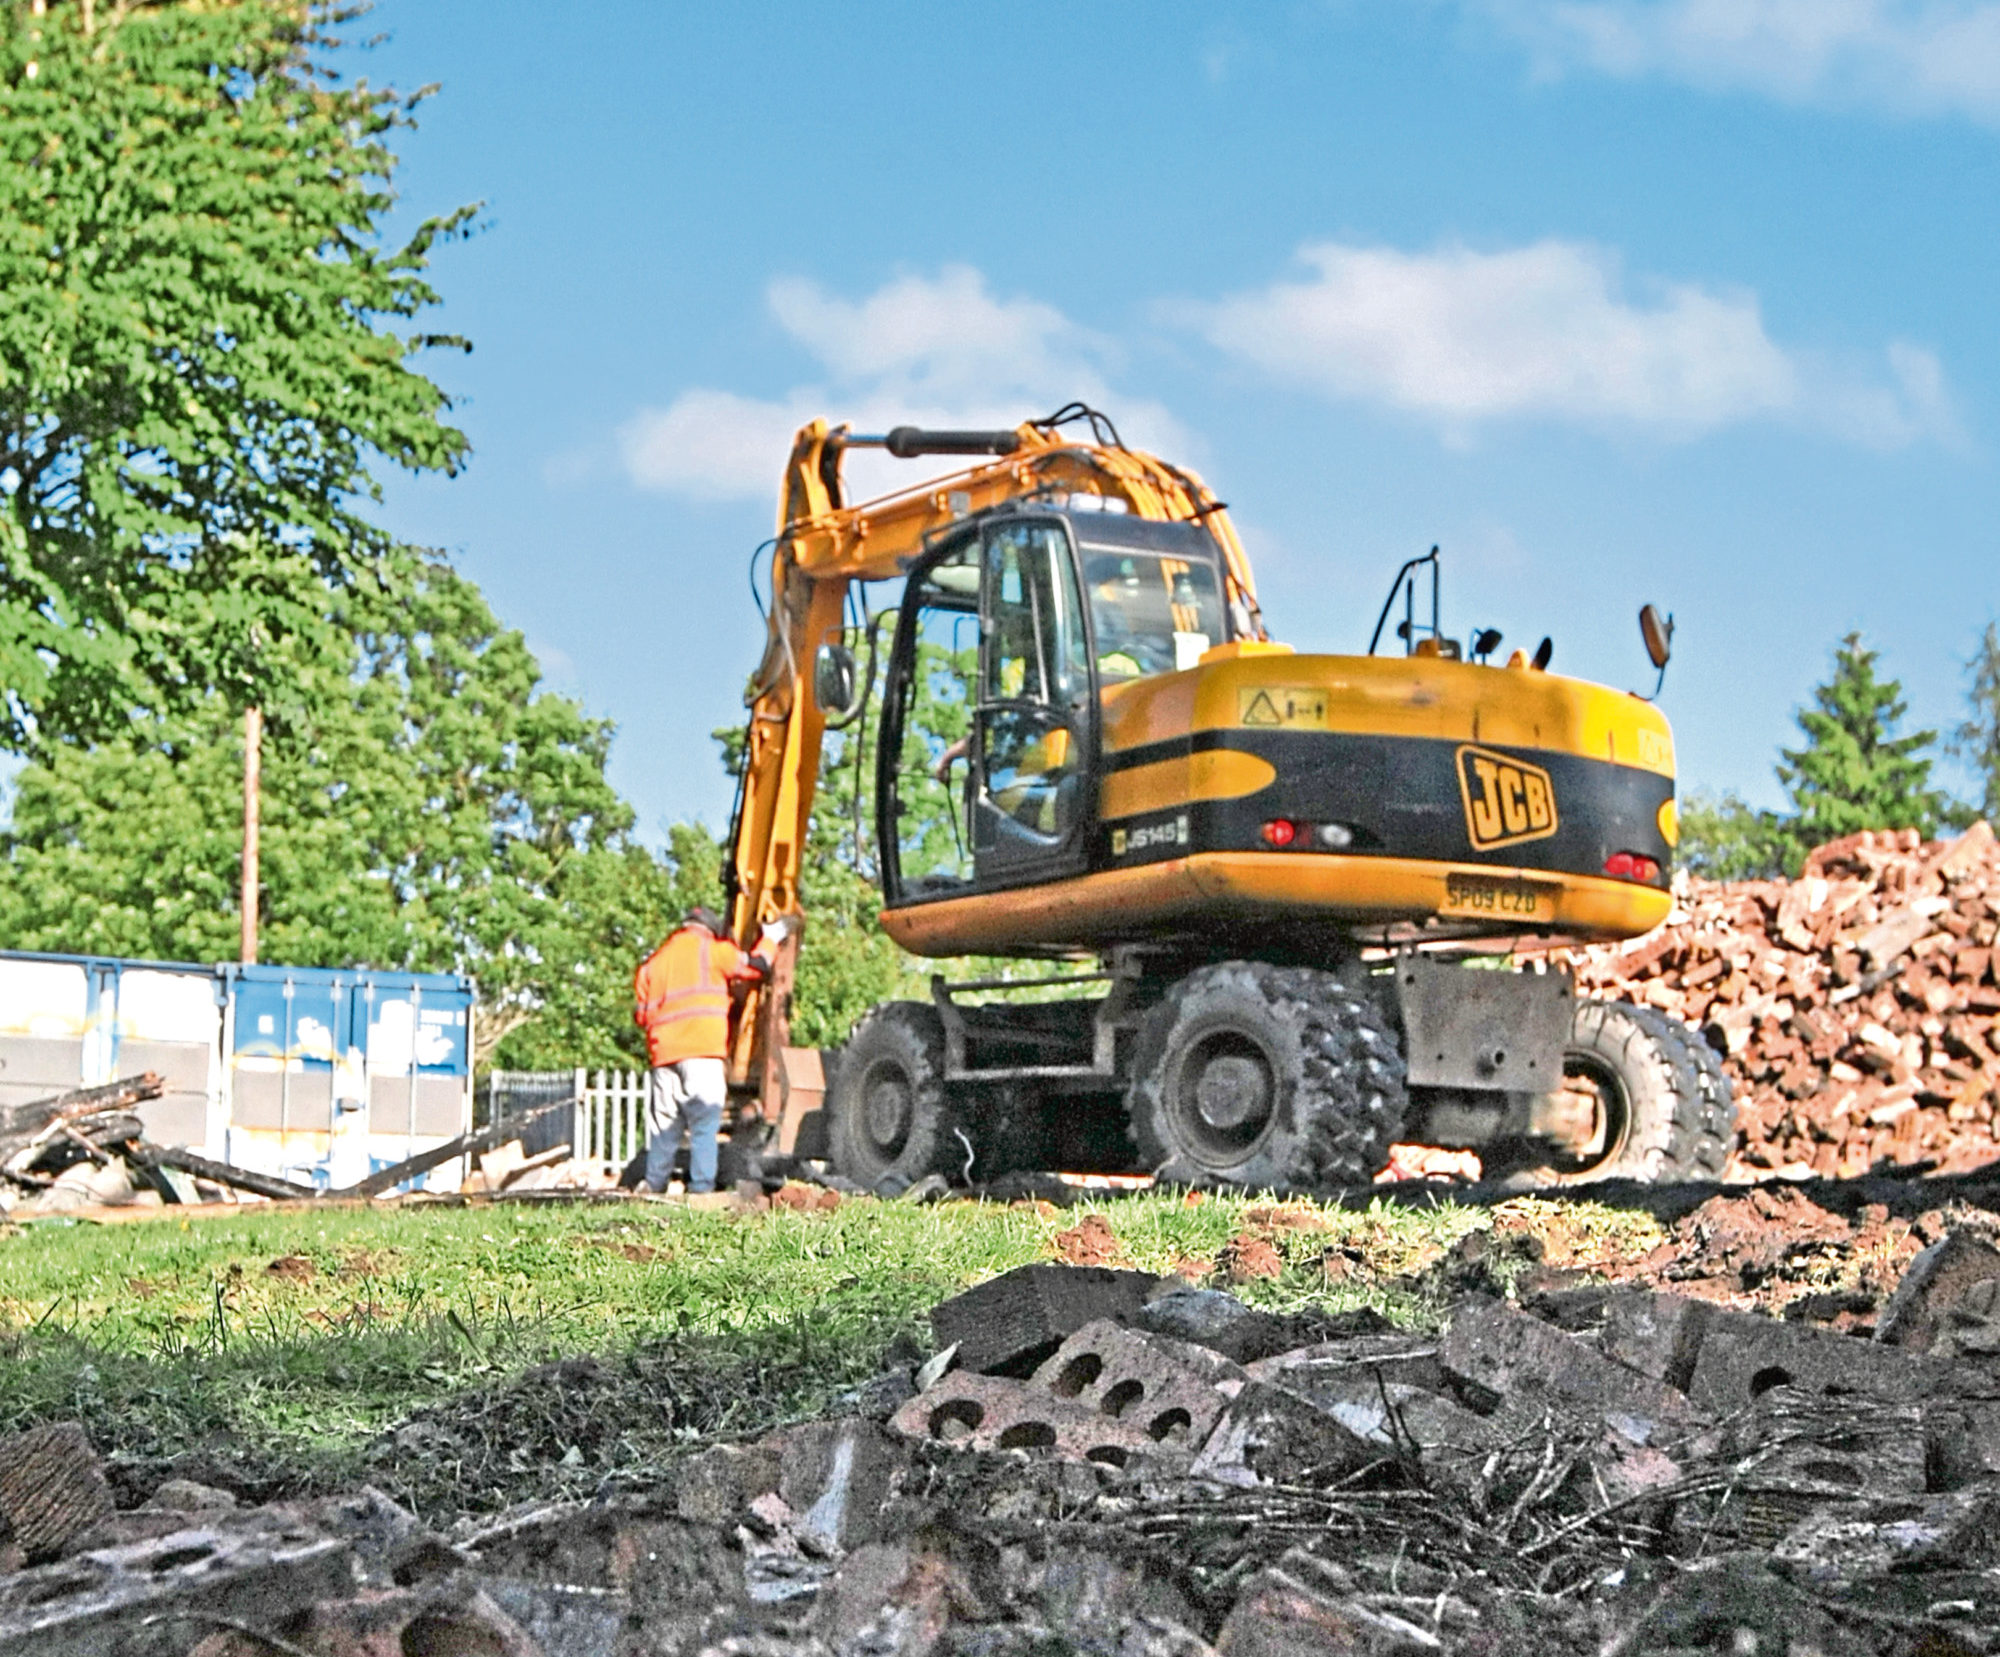 A digger at work on the ruined buildings